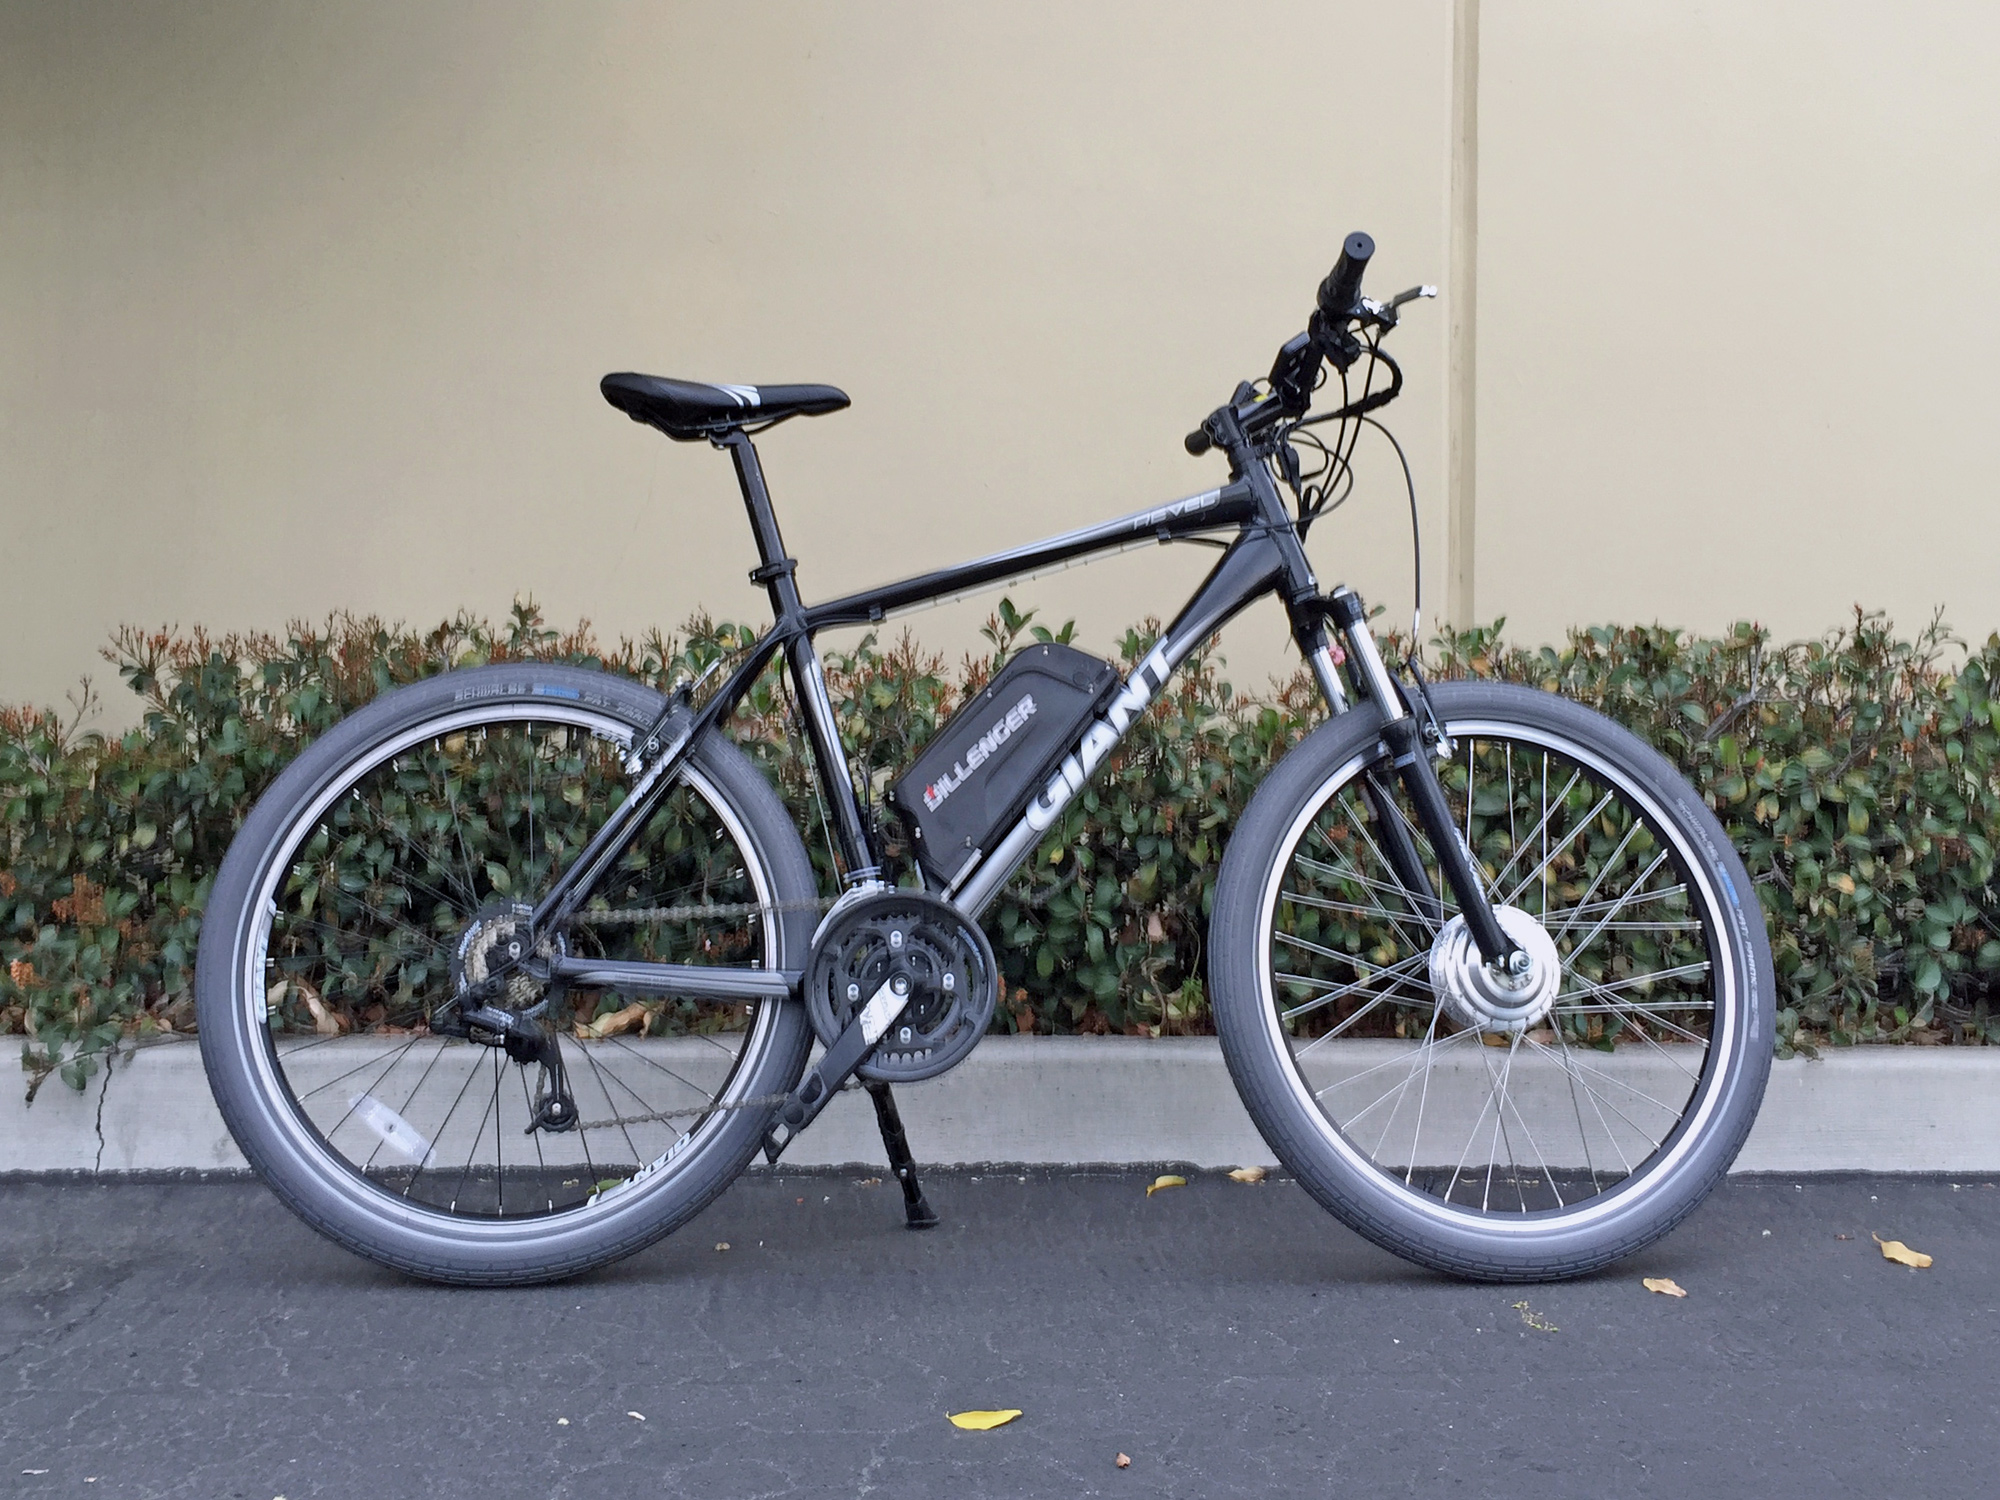 Dillenger Electric Bikes The motor is a watt or